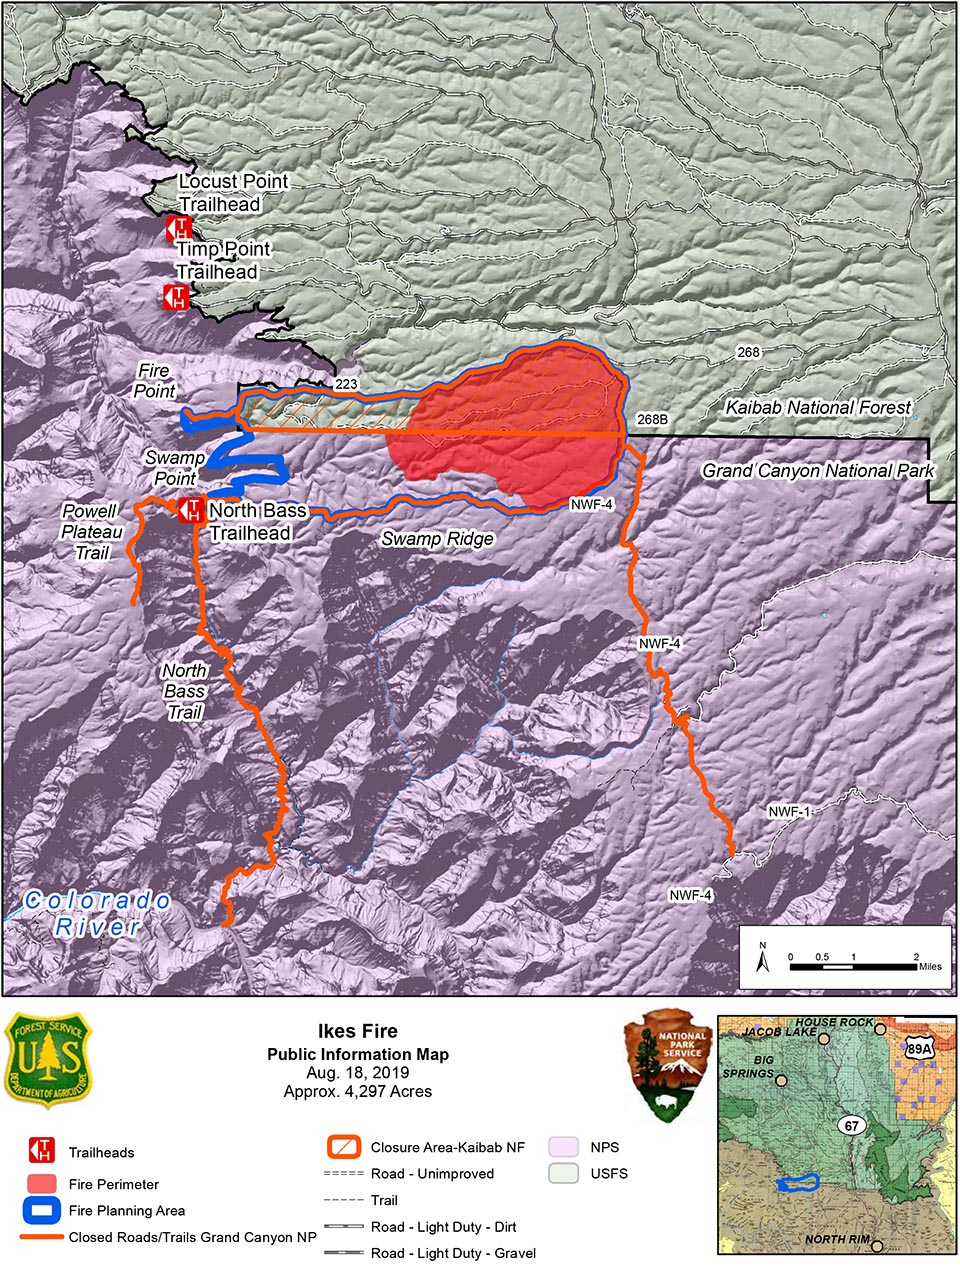 Map showing the Ikes Fire road and trail closures and containment area in relation to the north side of Grand Canyon National Park in its boundary with Kaibab Nat. Forest